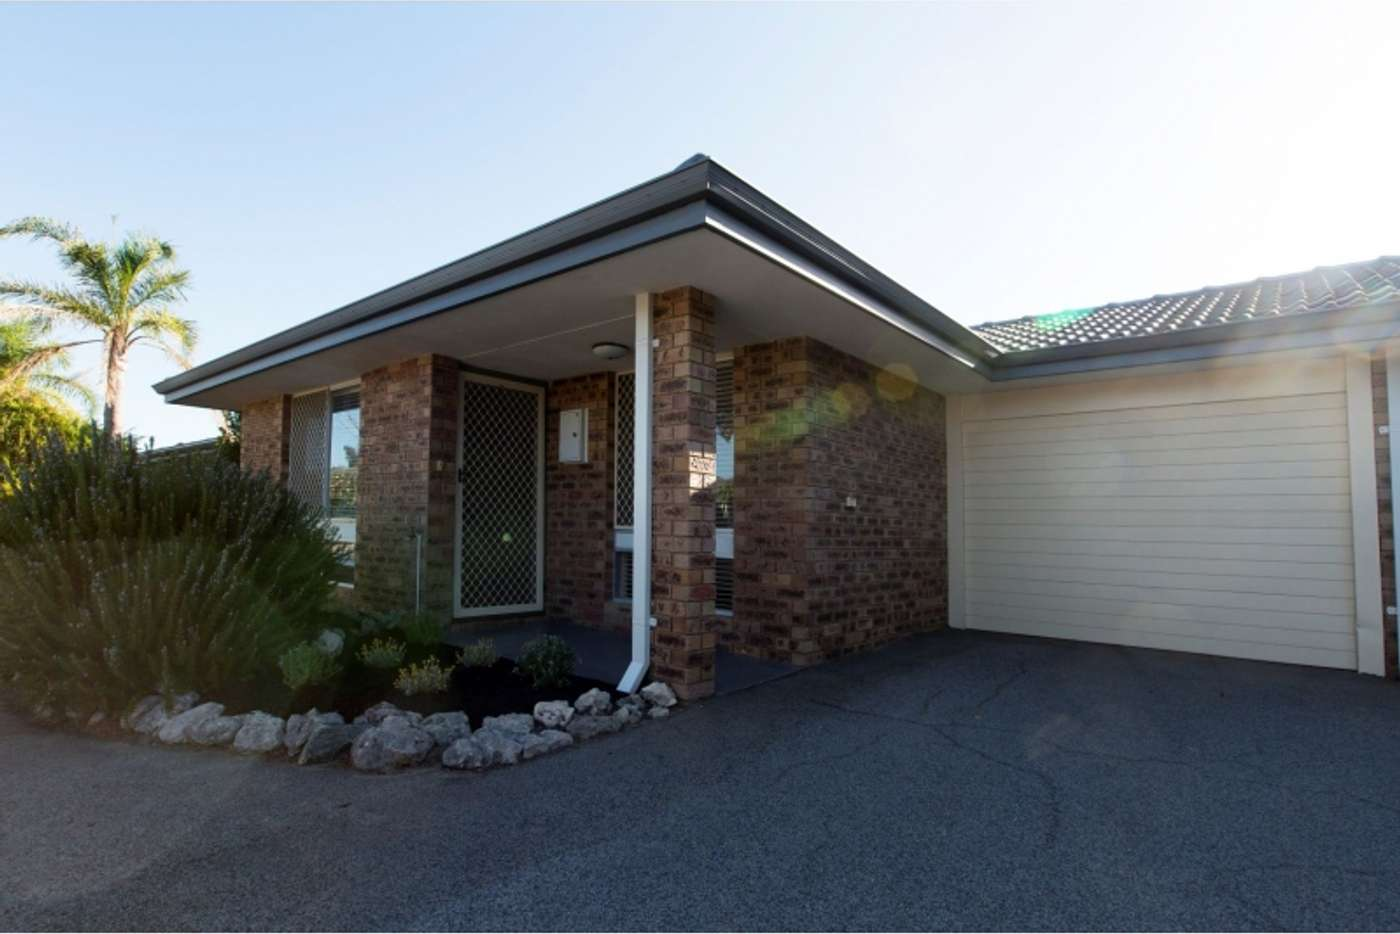 Main view of Homely villa listing, 11/87 Barbican Street East, Shelley WA 6148